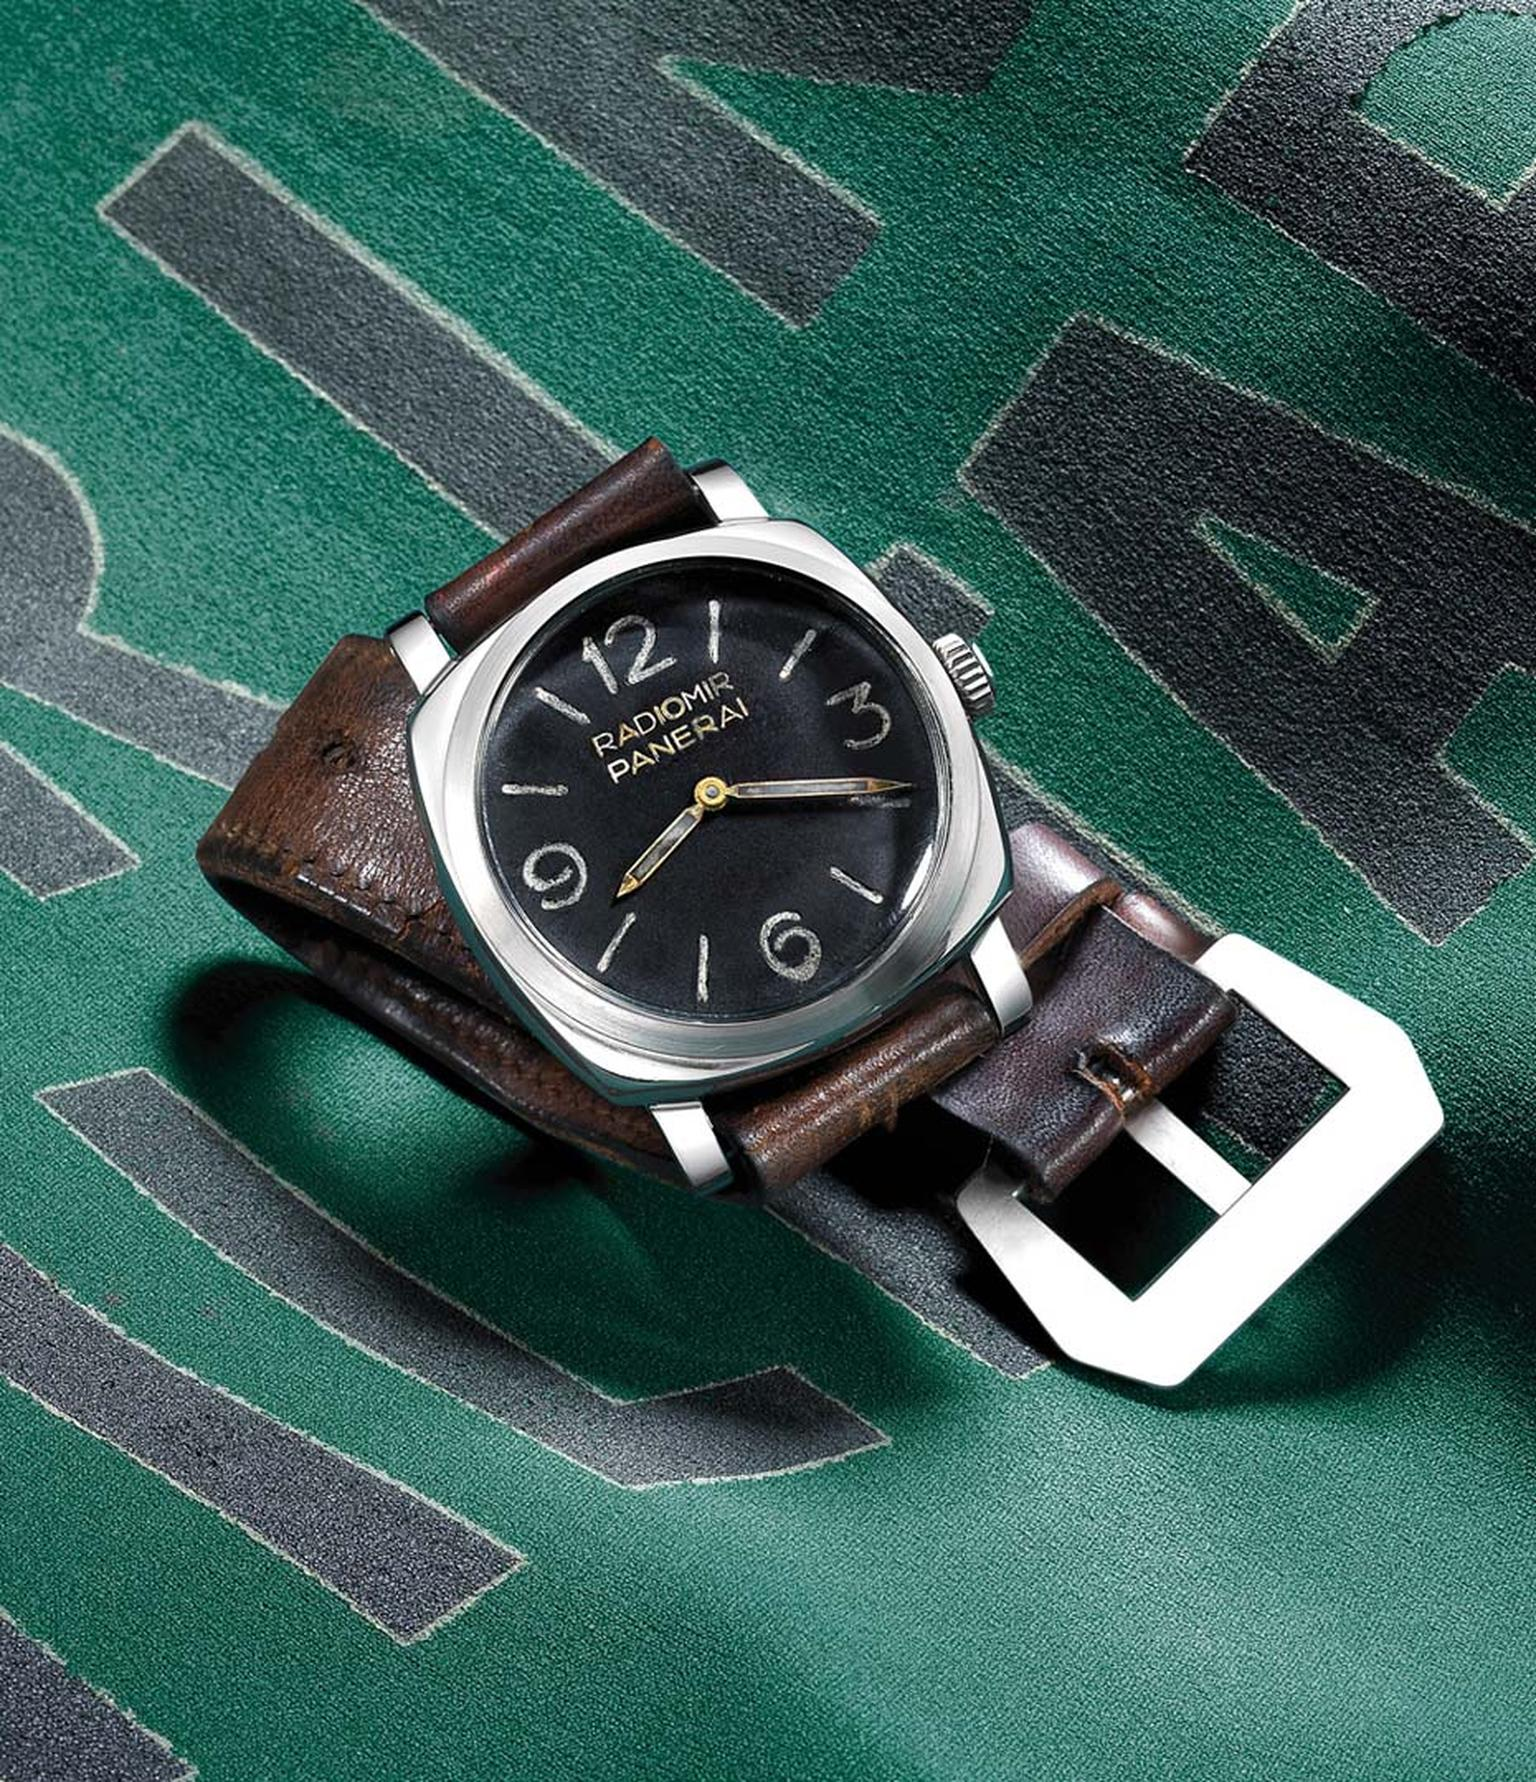 Featuring a large 45mm white gold cushion-shaped case, the Panerai Radiomir watch is the brand's latest tribute to the classic 1940 Radiomir.